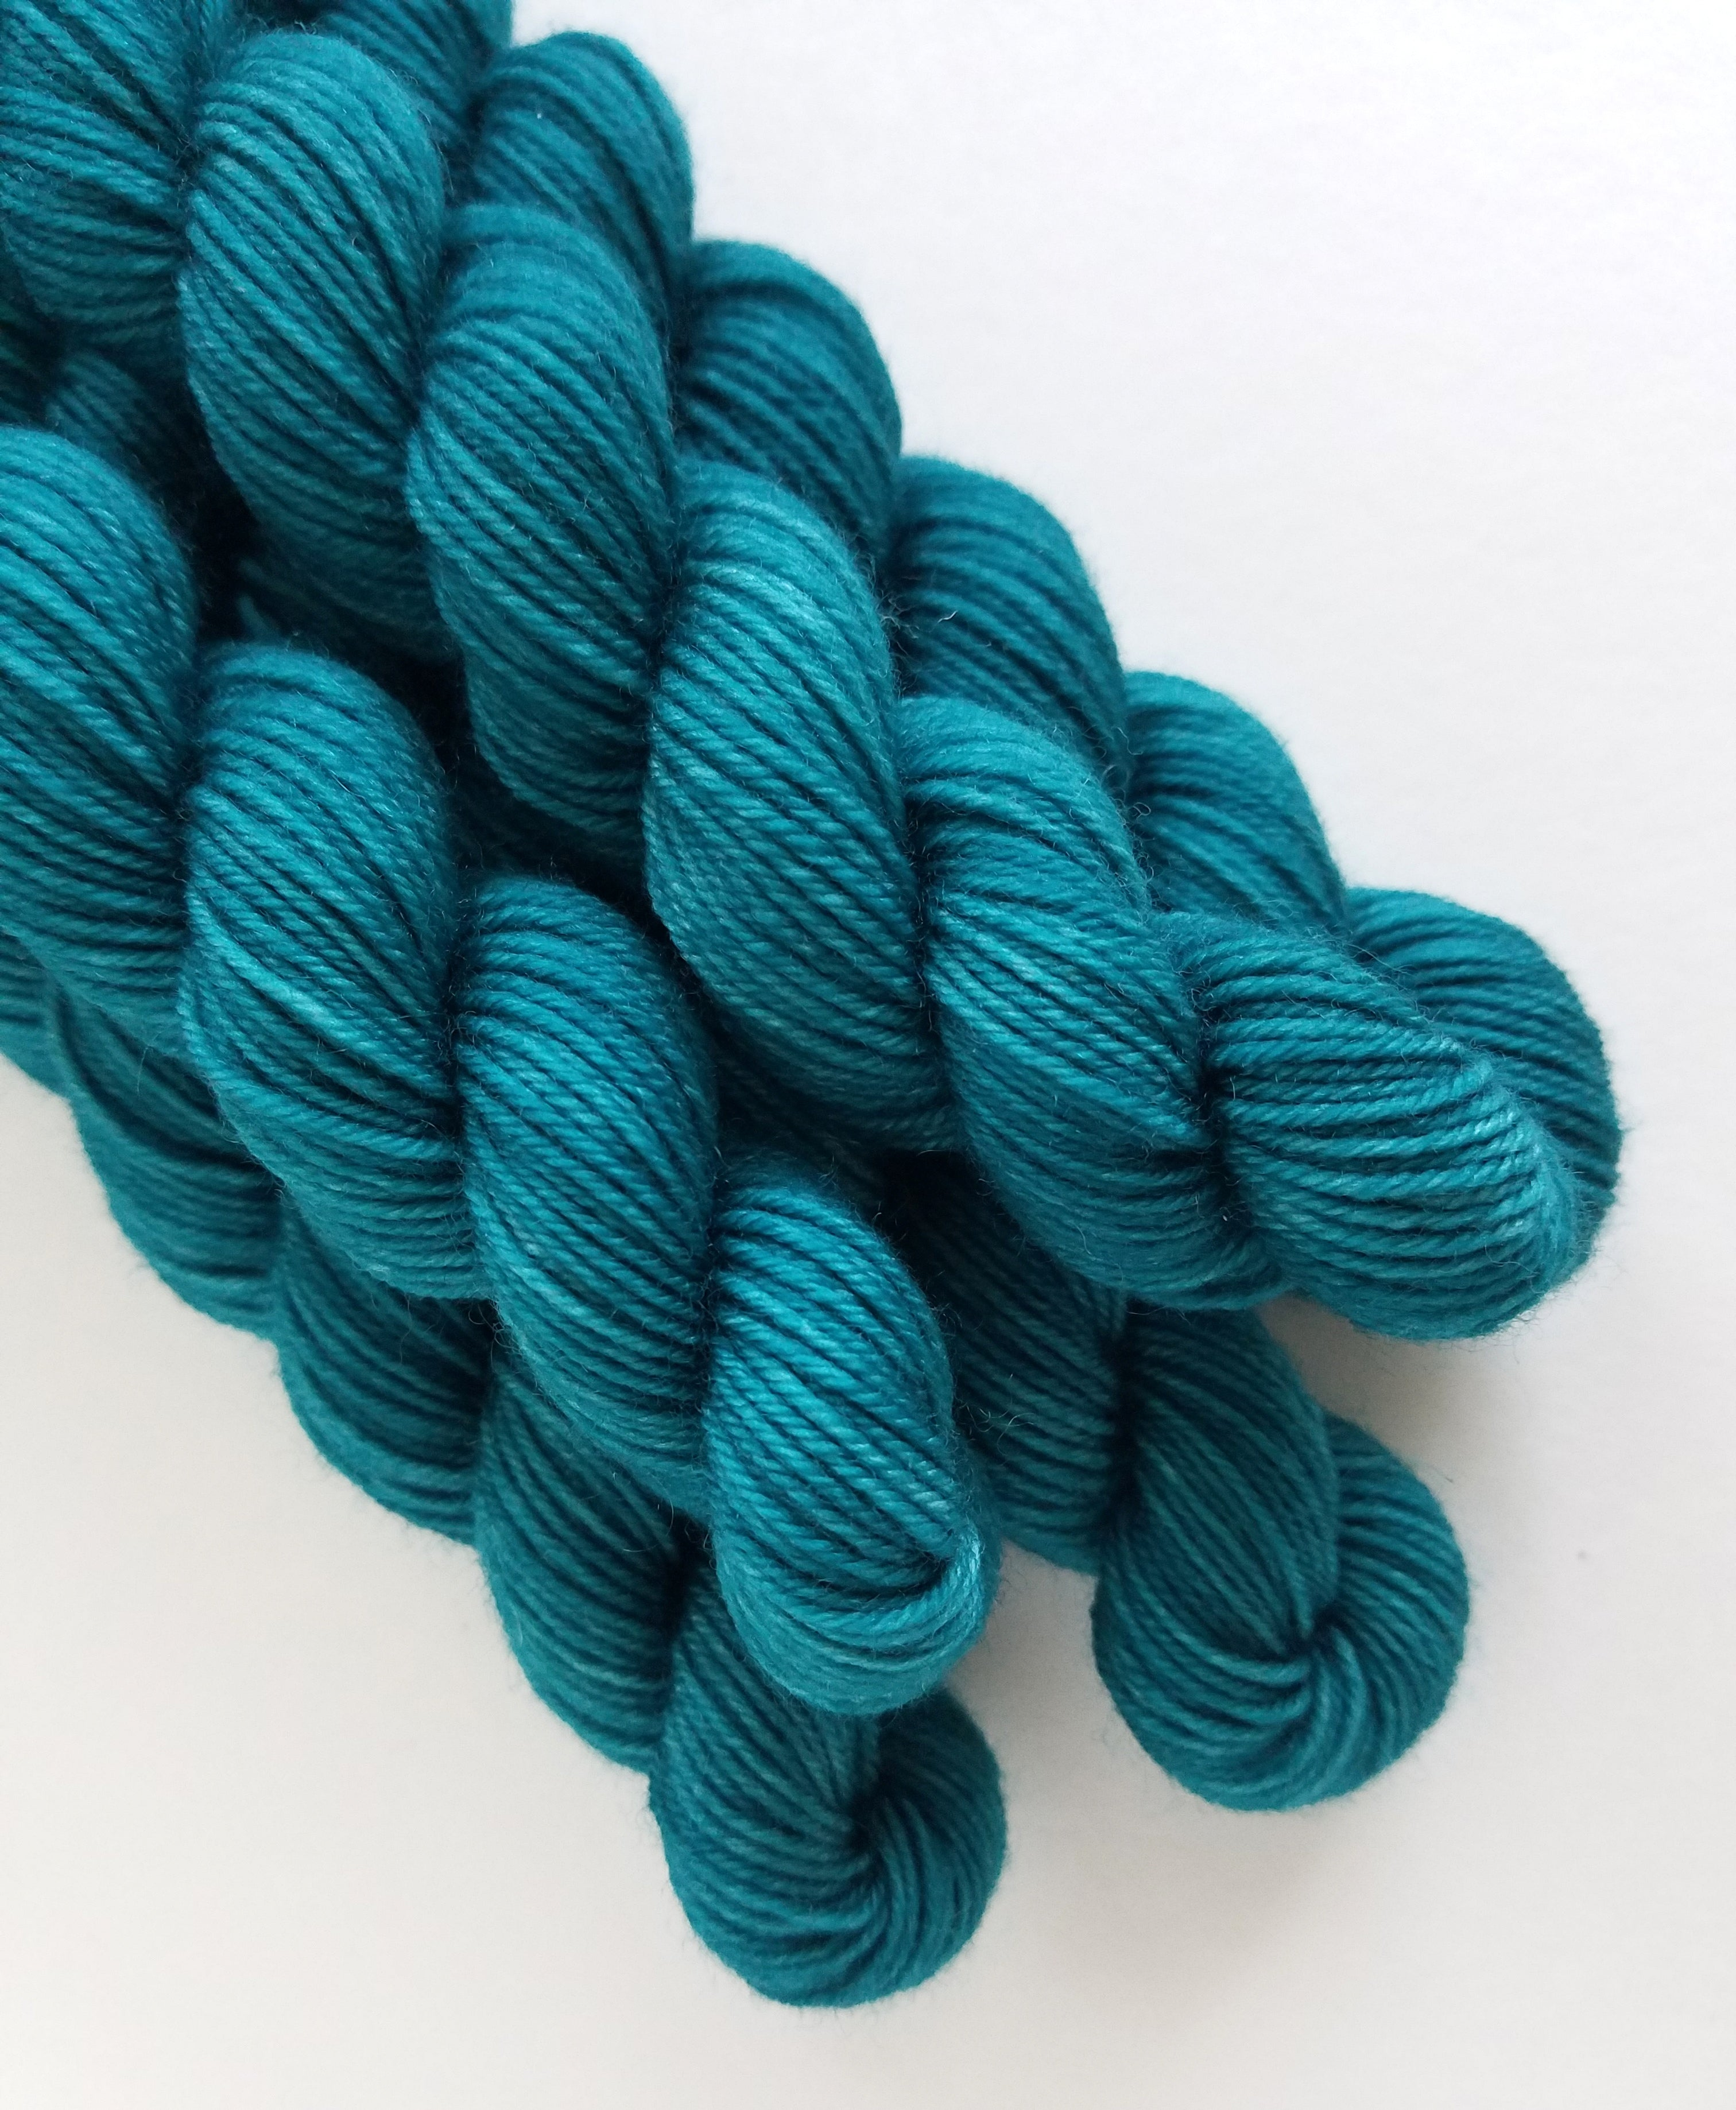 Teal Mini Skein Hand Dyed Yarn Semi Solid